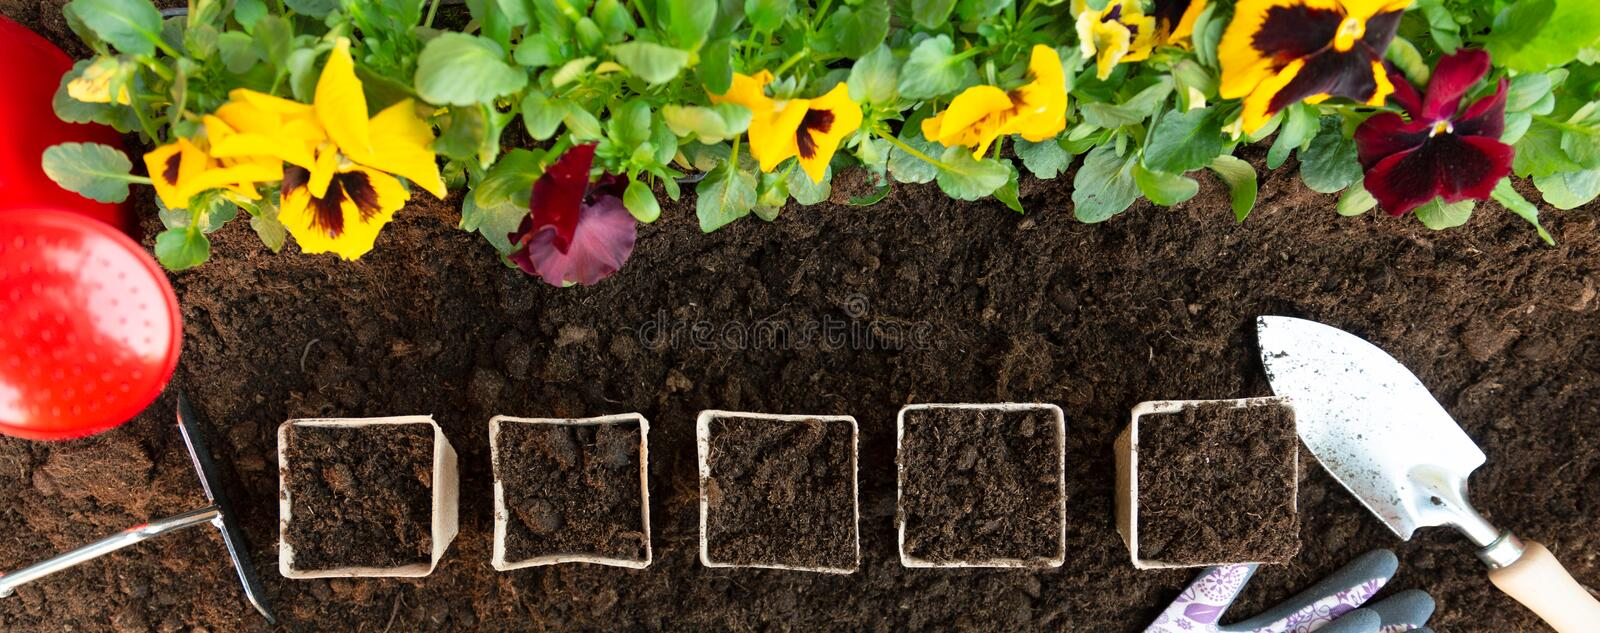 Gardening tools and paper pots on soil background. Planting spring pansy flower in garden. Spring garden work concept stock photography